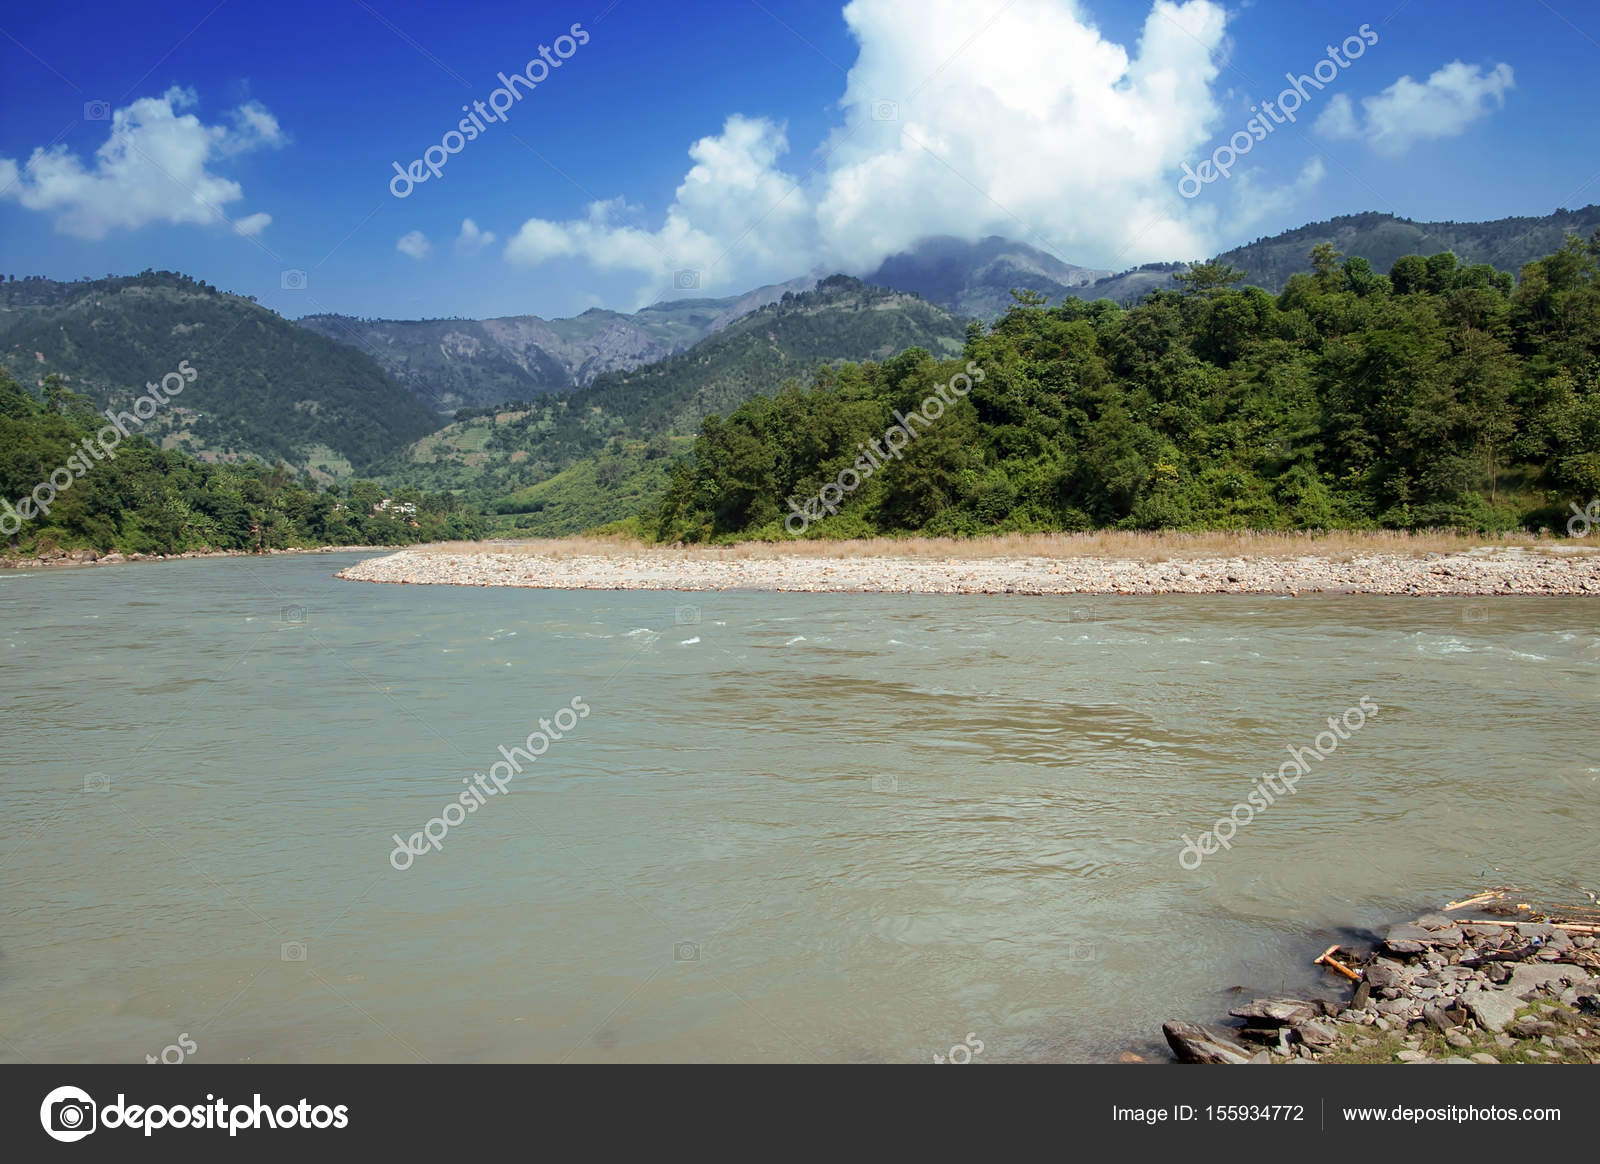 river based tourism in nepal an analysis Tourism policy the tourism industry is growing very rapidly and nepal has tremendous potential for tourism development because of its unique natural and cultural heritage.